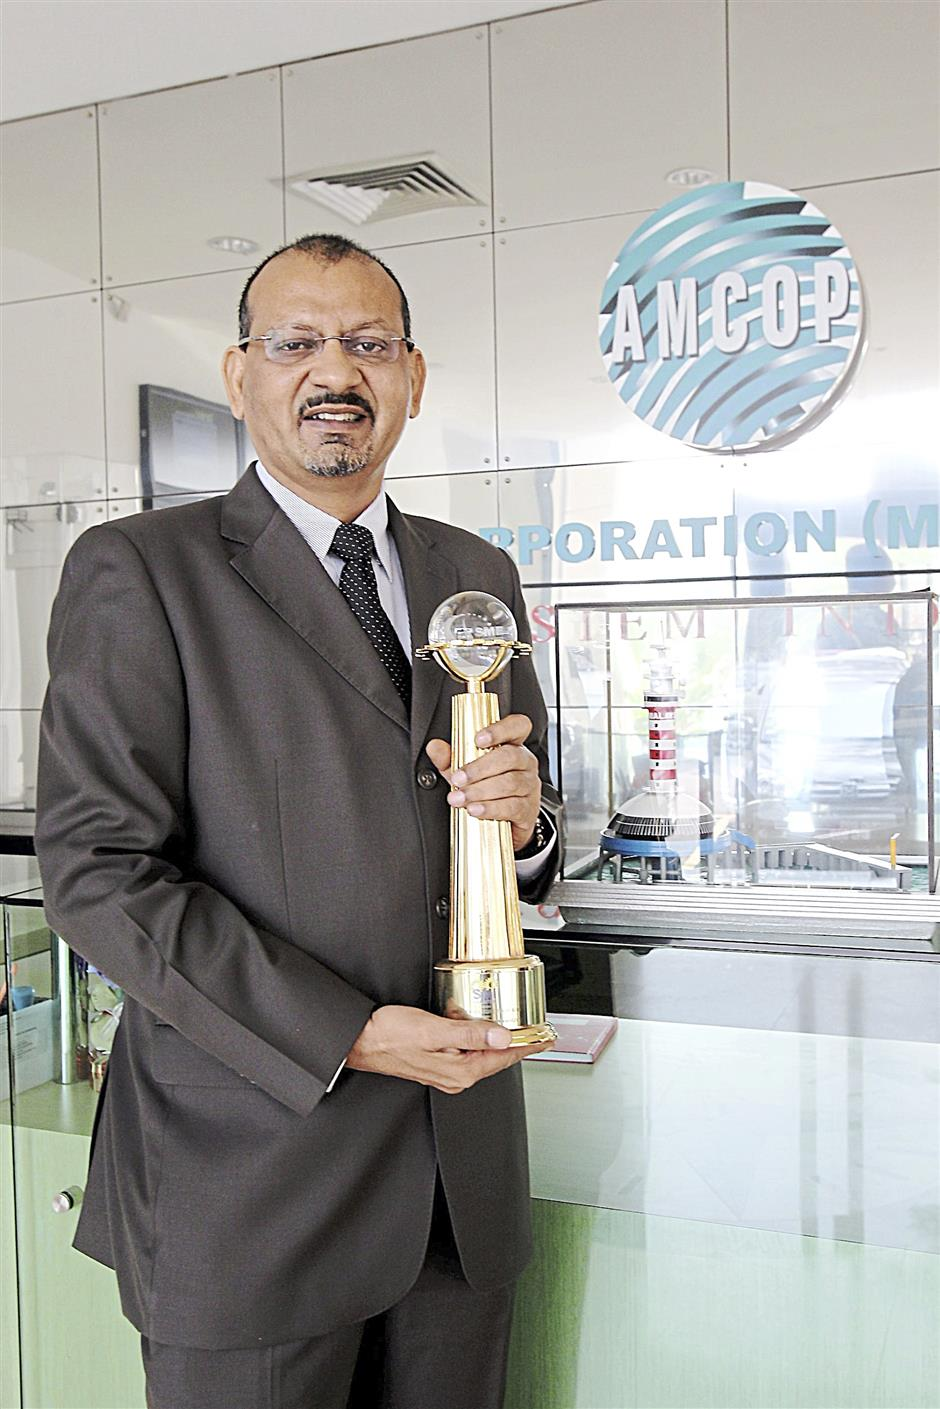 Mustaffa holding the SME Service Excellence Award 2012 received from SMI Association of Malaysia. He is standing beside a model of One Fathom Bank radar system.